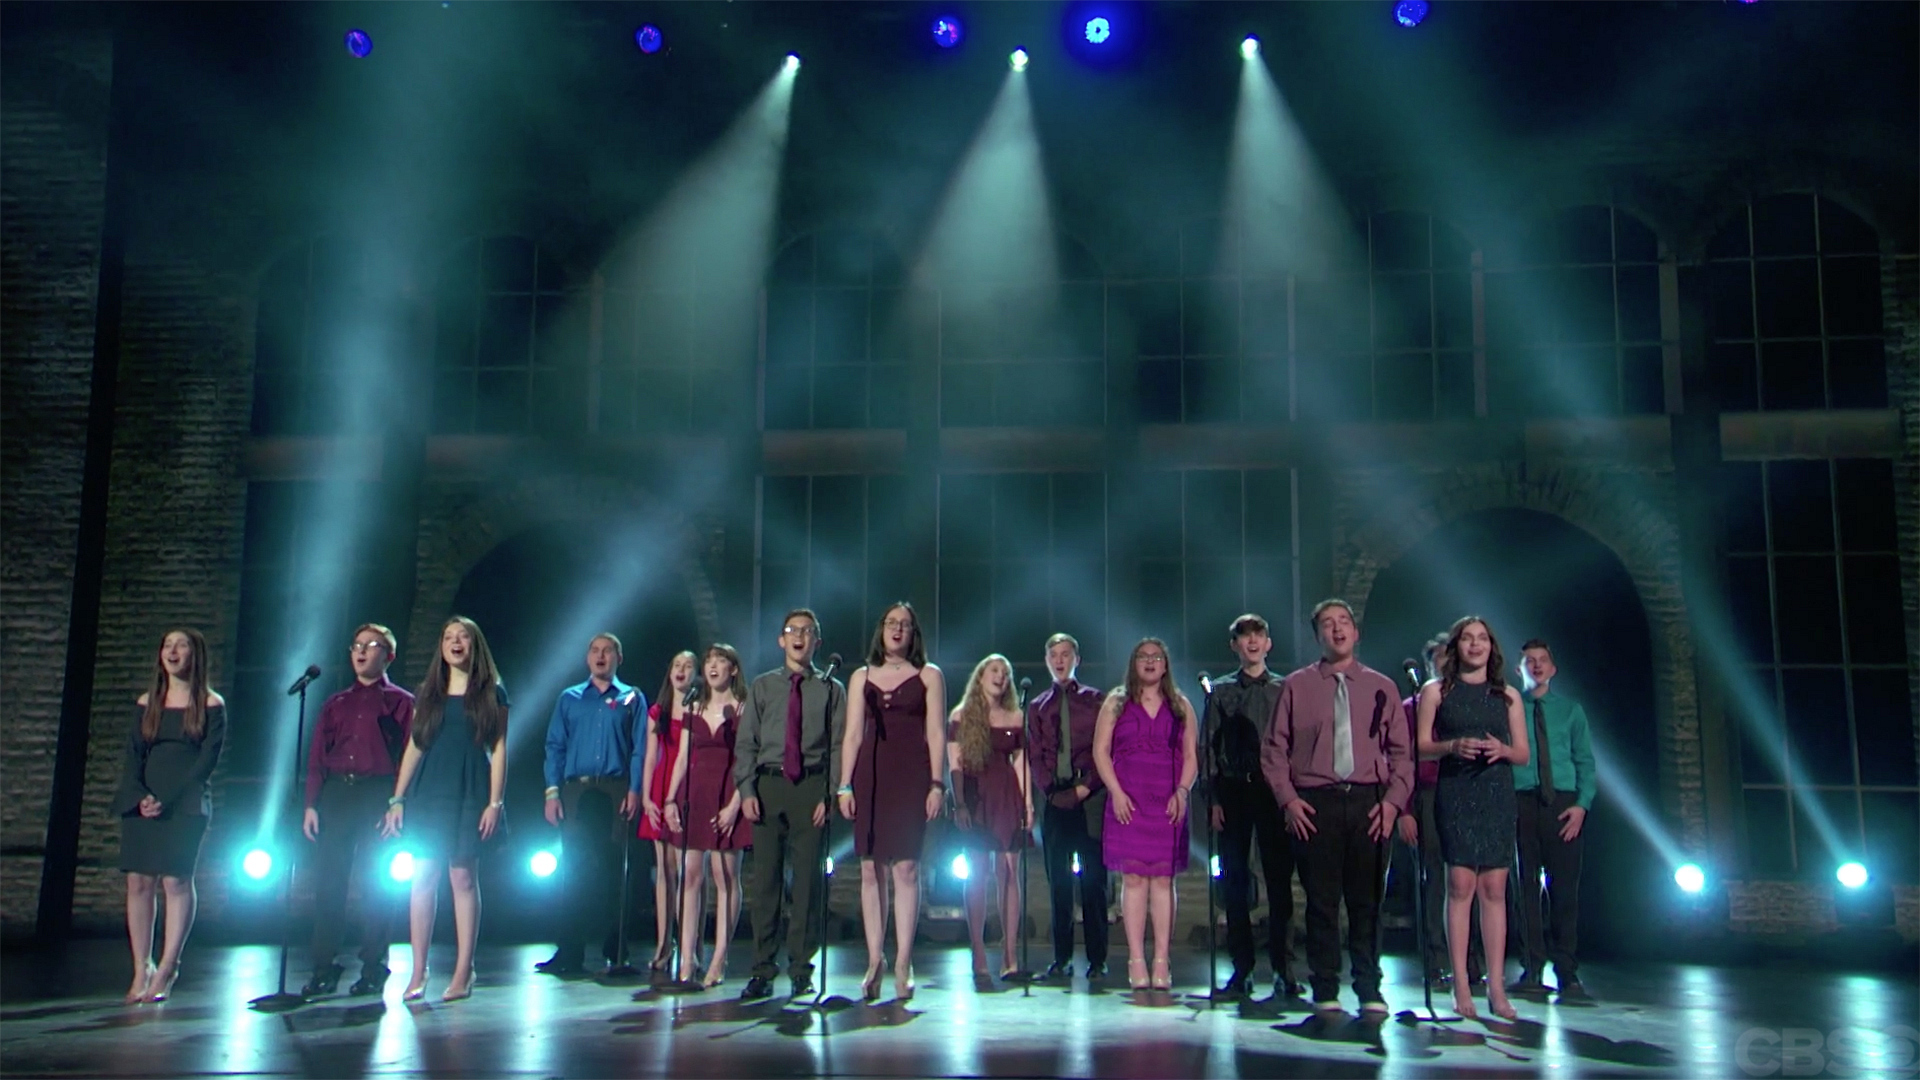 "The Marjory Stoneman Douglas Drama Club perform ""Seasons Of Love"" from Rent at the 2018 Tony Awards."